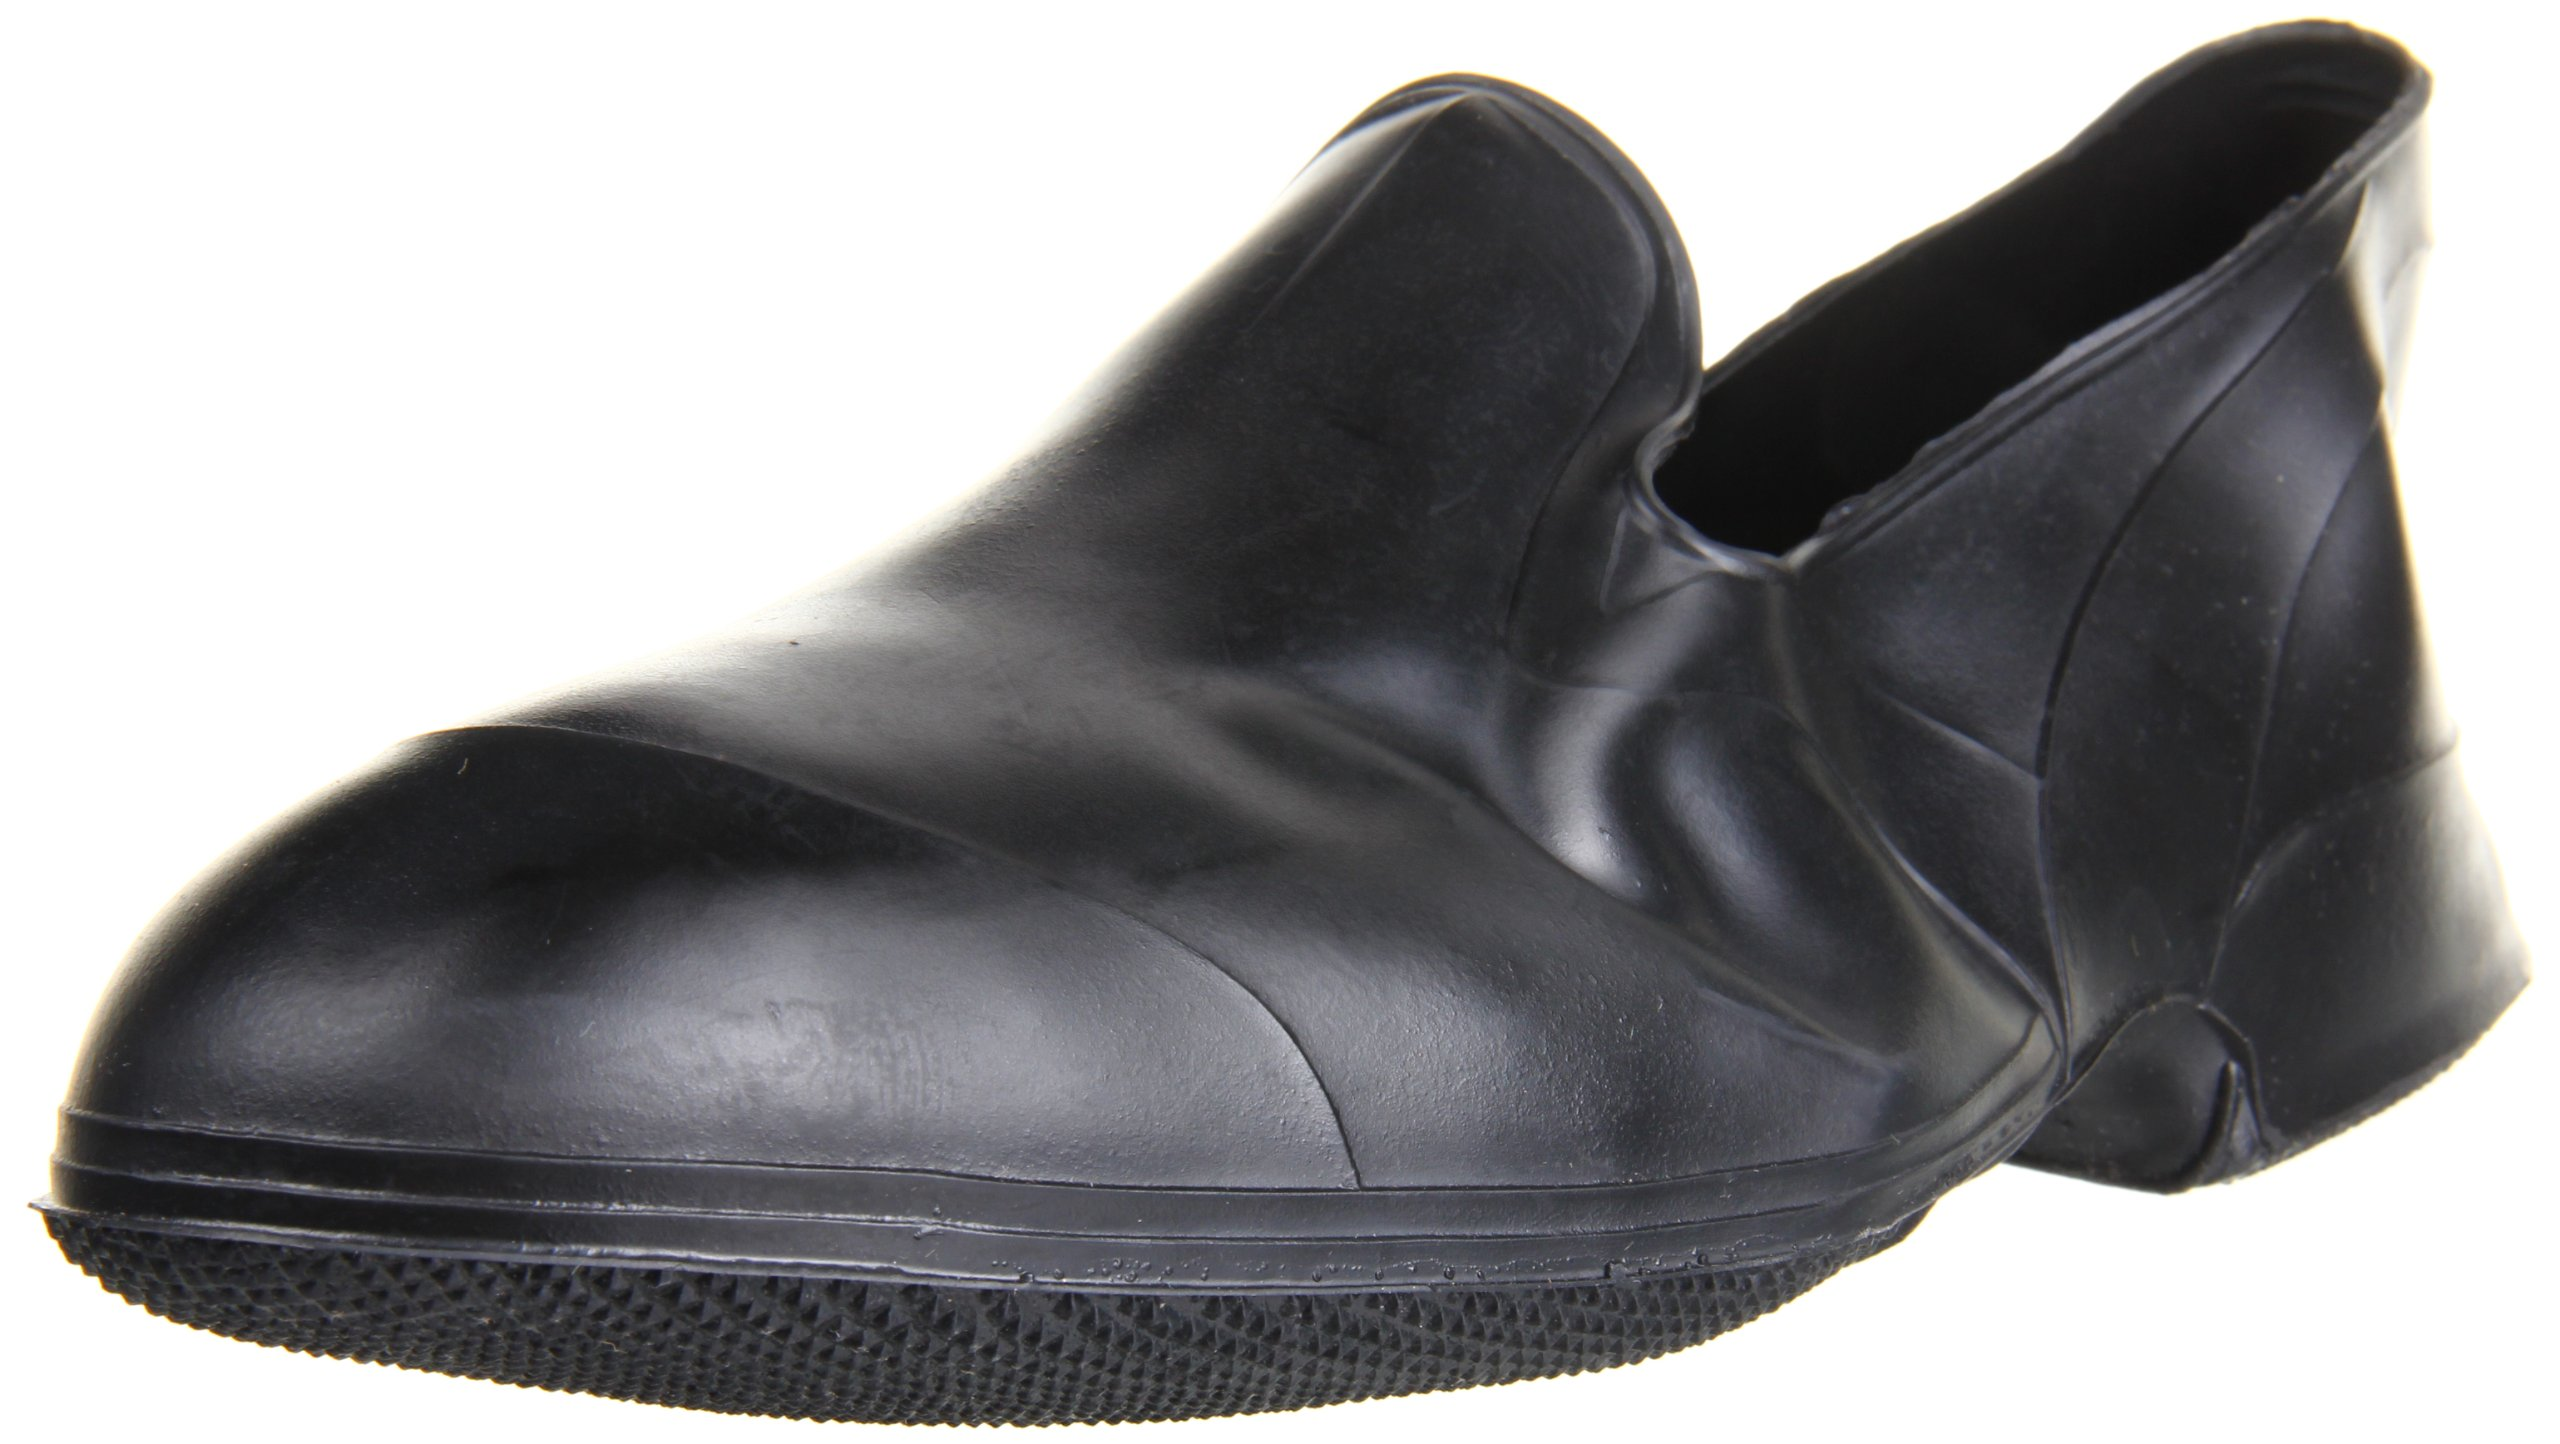 TINGLEY Men's Storm Stretch Overshoe,Black,Large/9.5-11 M US